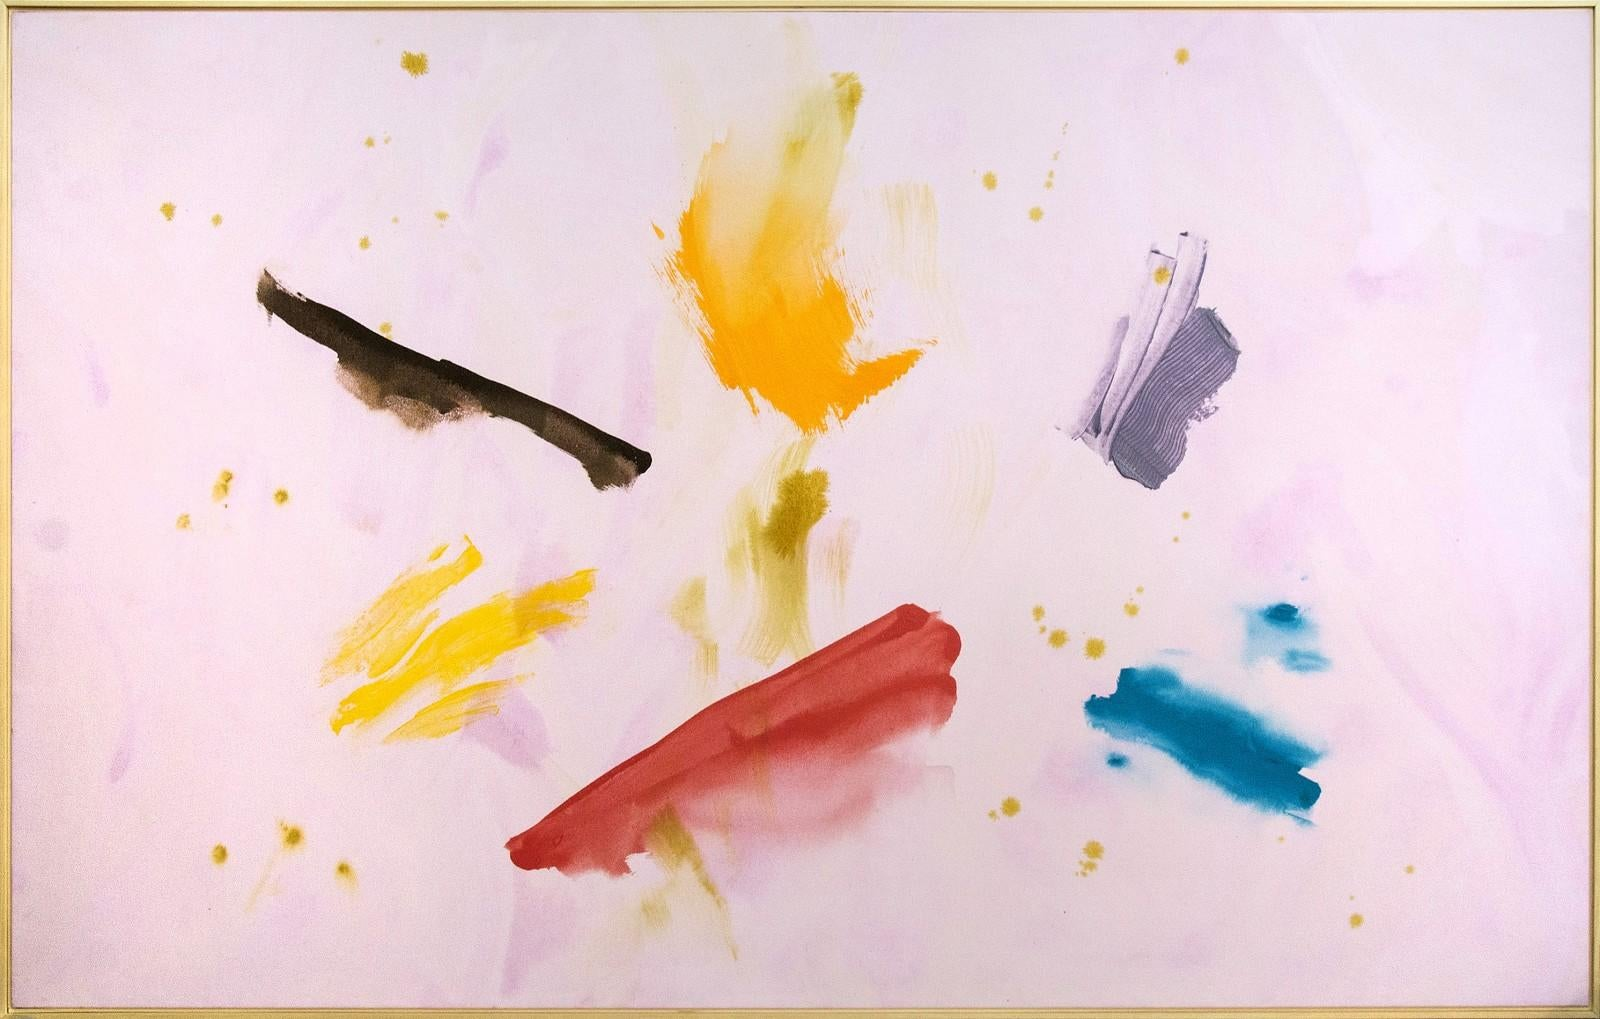 Summering - Expressive strokes of red, blue, yellow and mauve